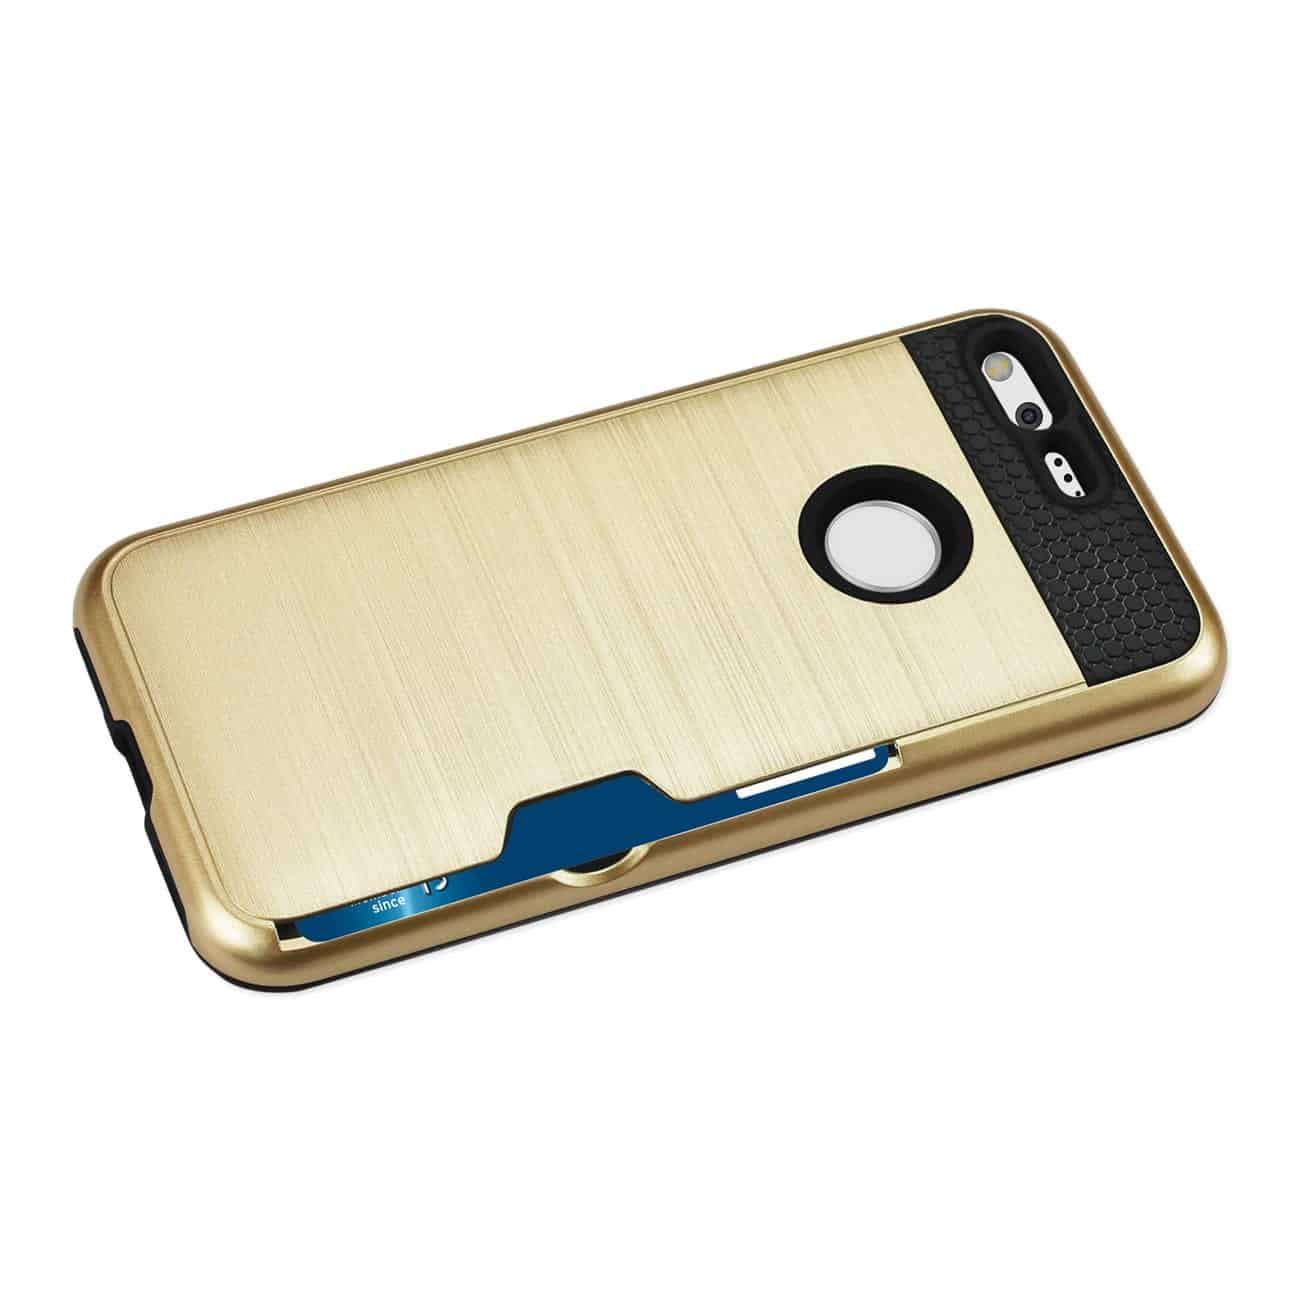 GOOGLE PIXEL SLIM ARMOR HYBRID CASE WITH CARD HOLDER IN GOLD